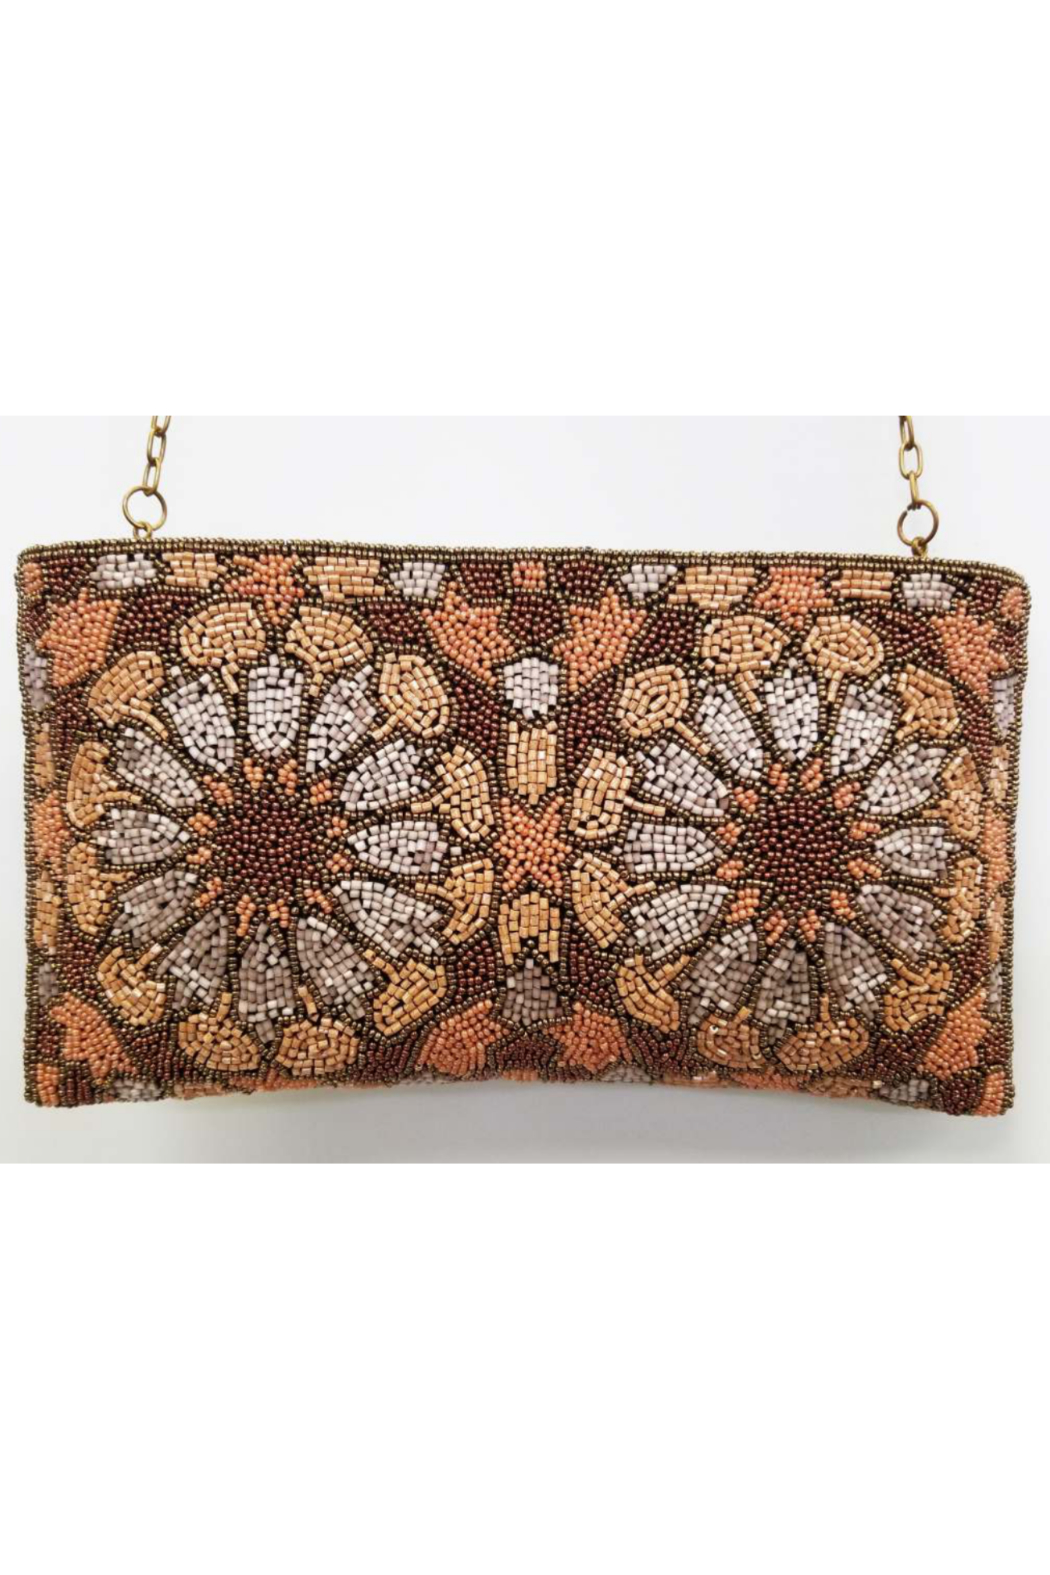 Ricki Designs Zip Top All Beaded Brown Flower Clutch - Front Cropped Image